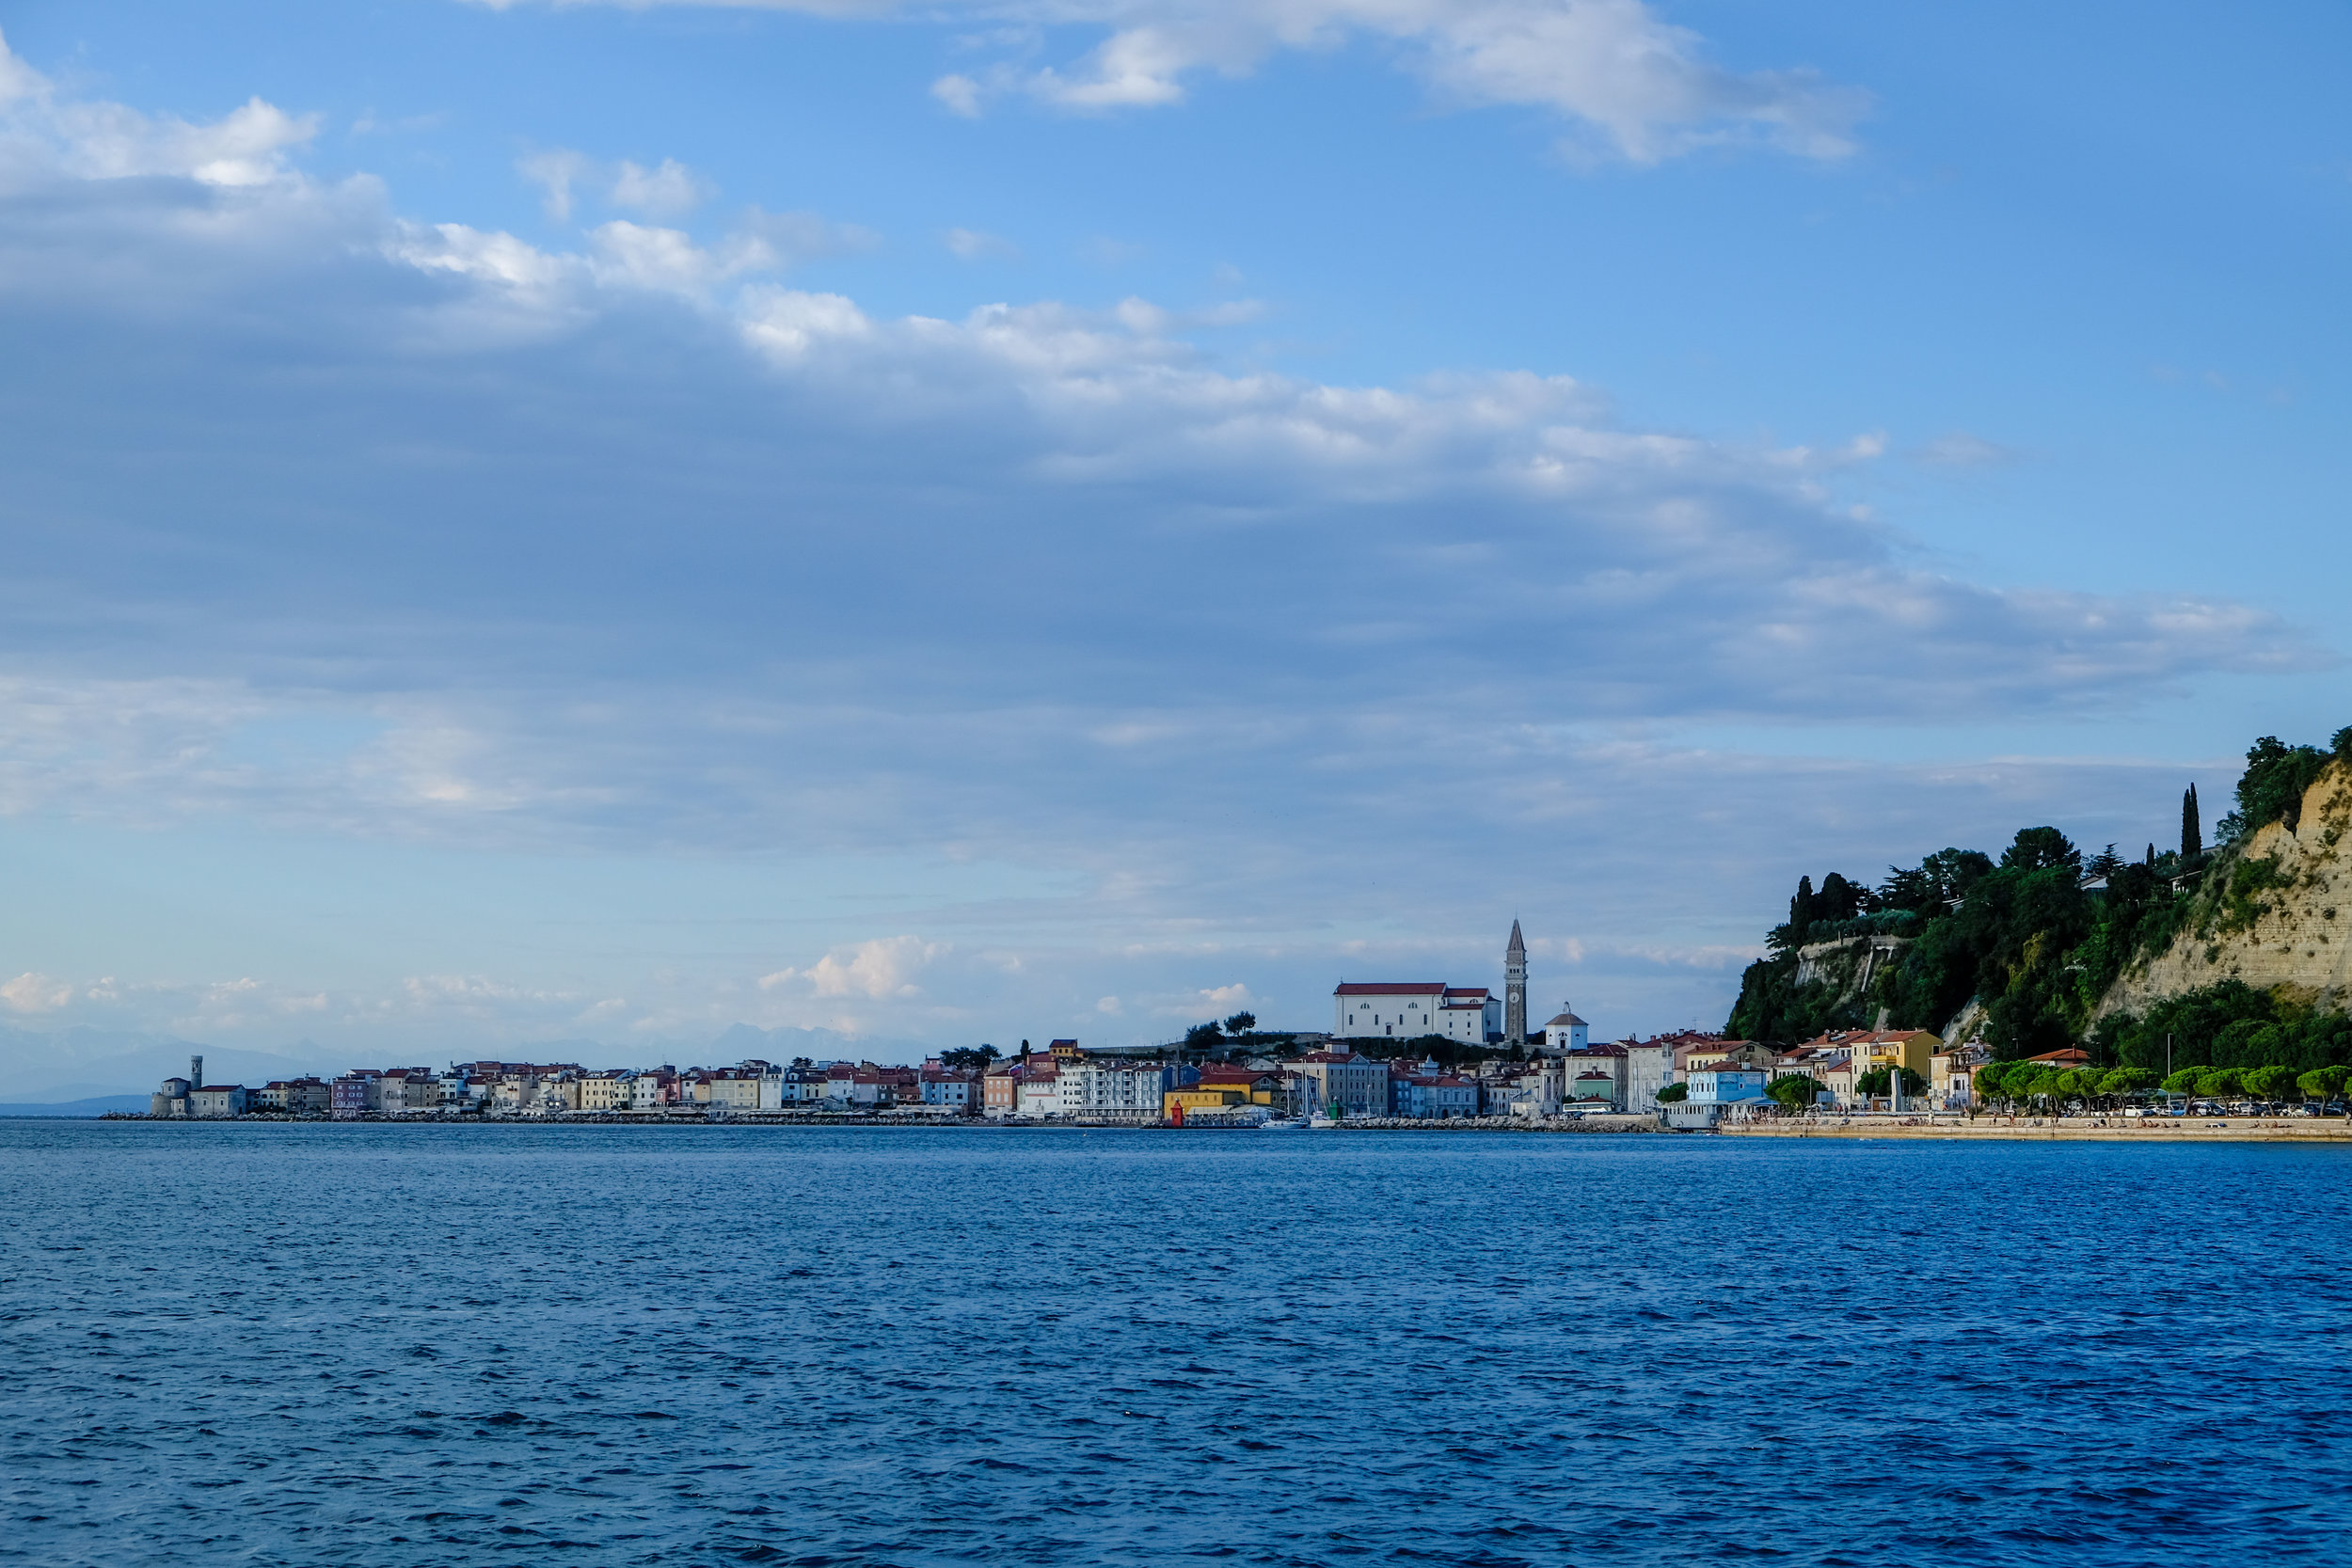 View of Piran from the Adriatic Sea